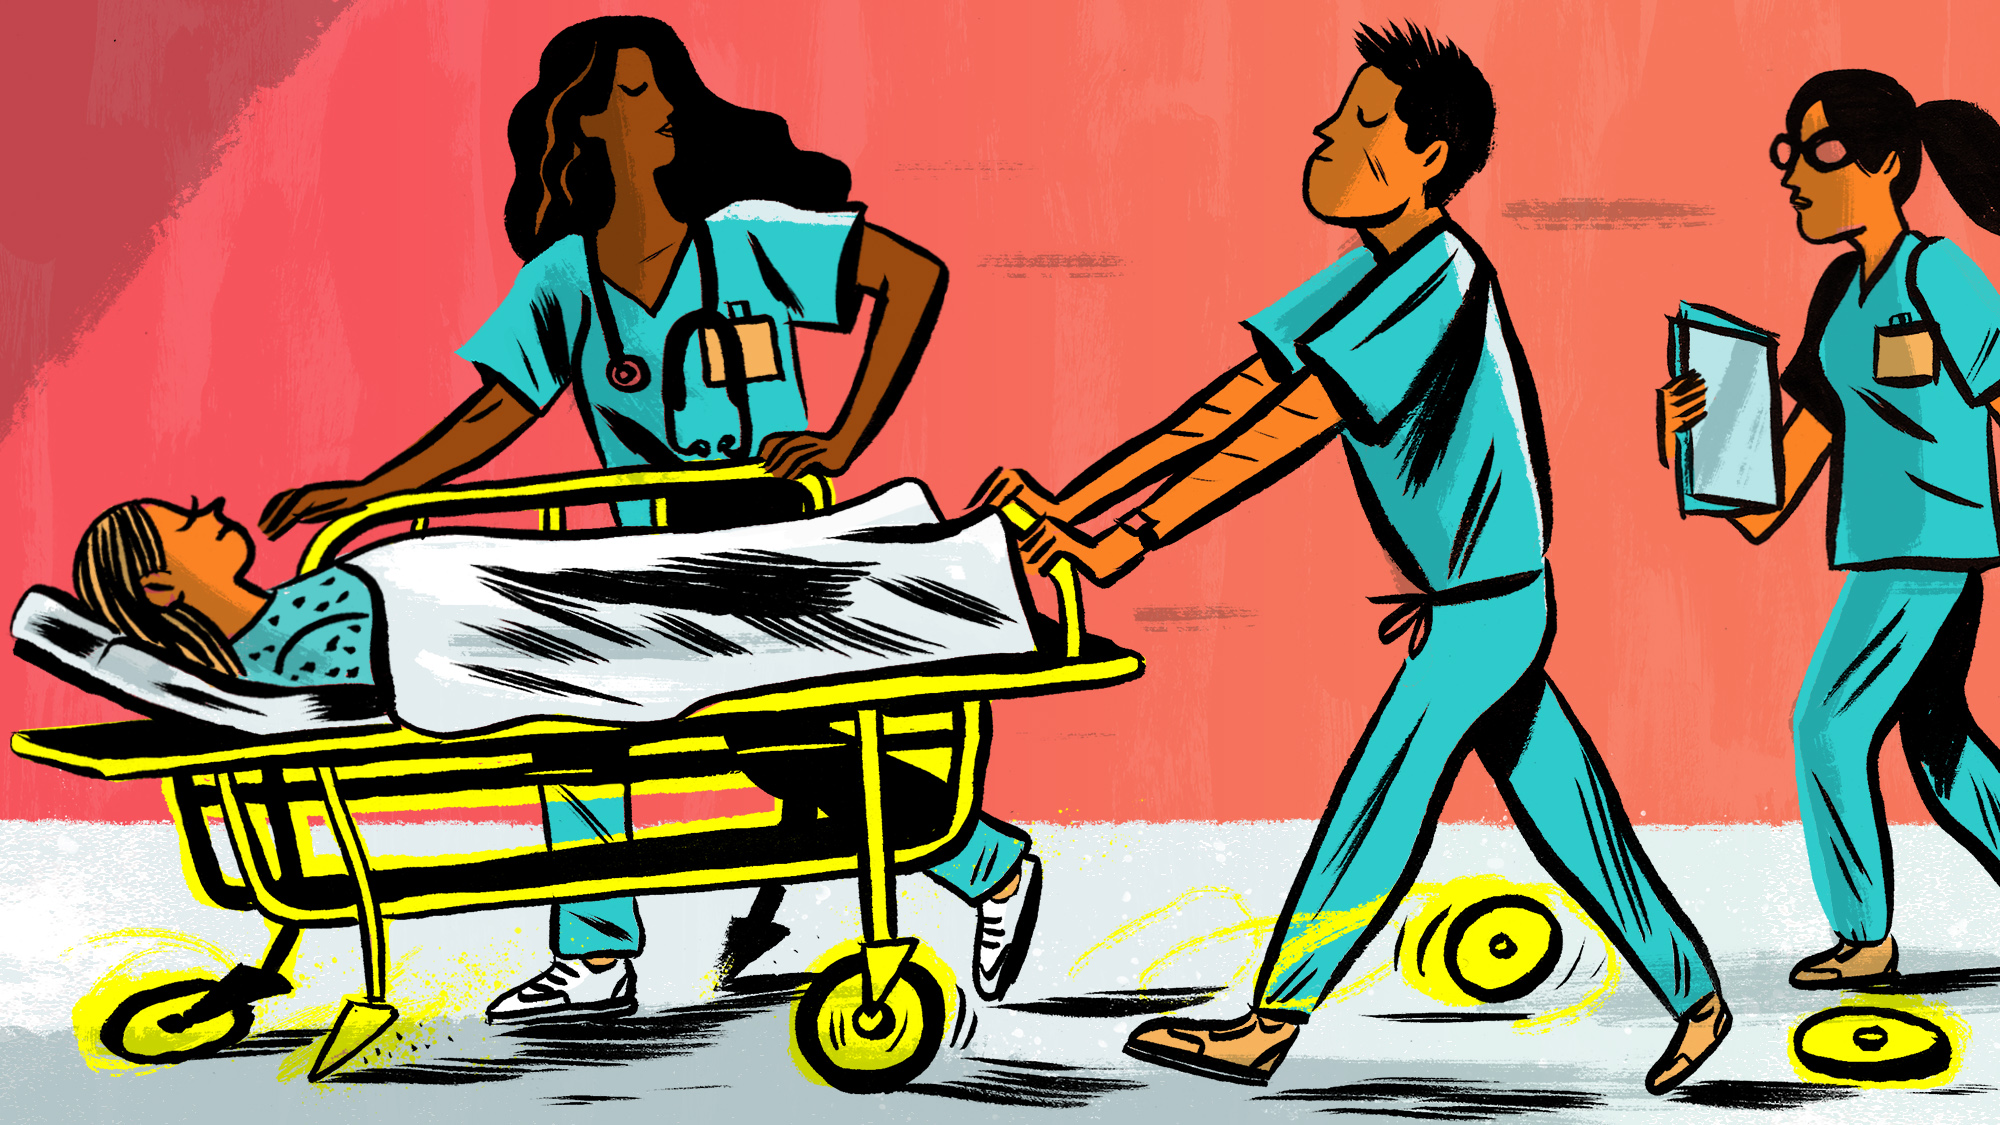 Doctors may learn bad habits at teaching hospitals with